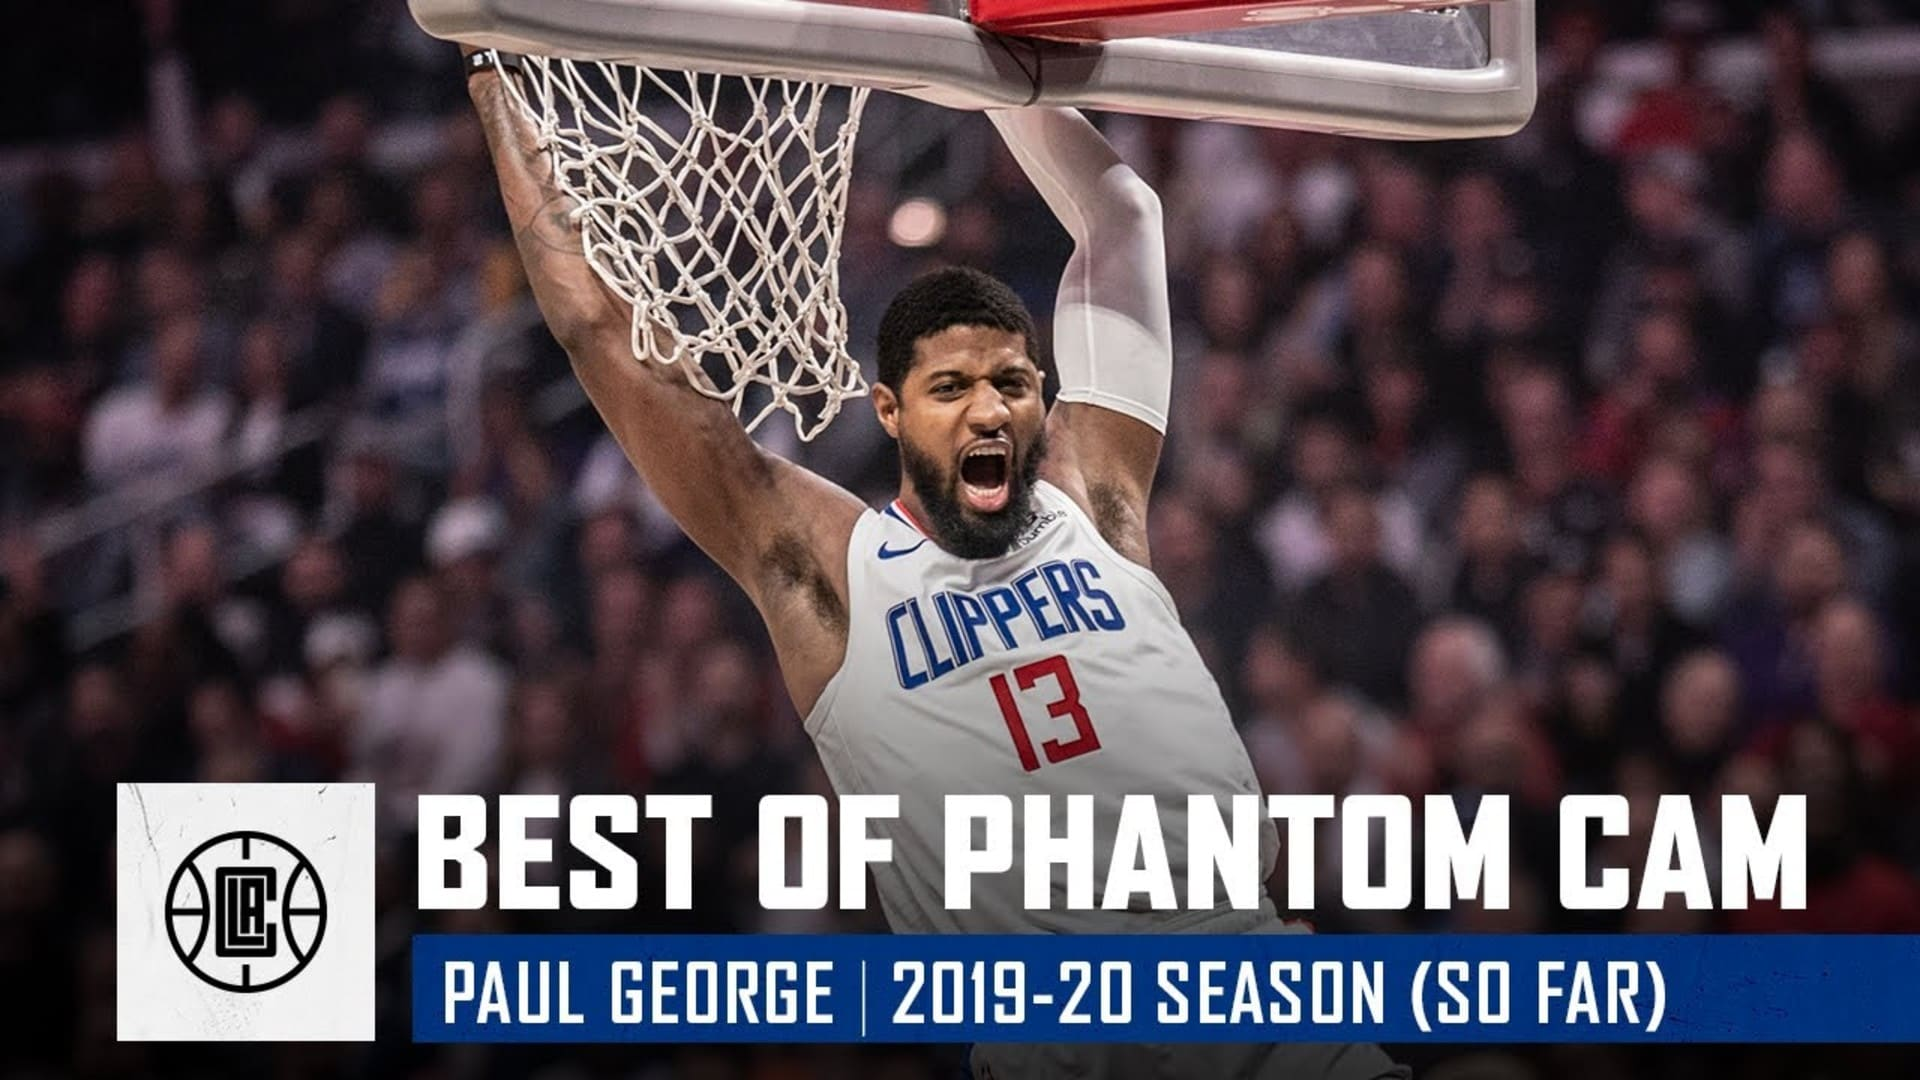 Paul George's Best Phantom Cam Shots of the 2019-20 Season (so far)